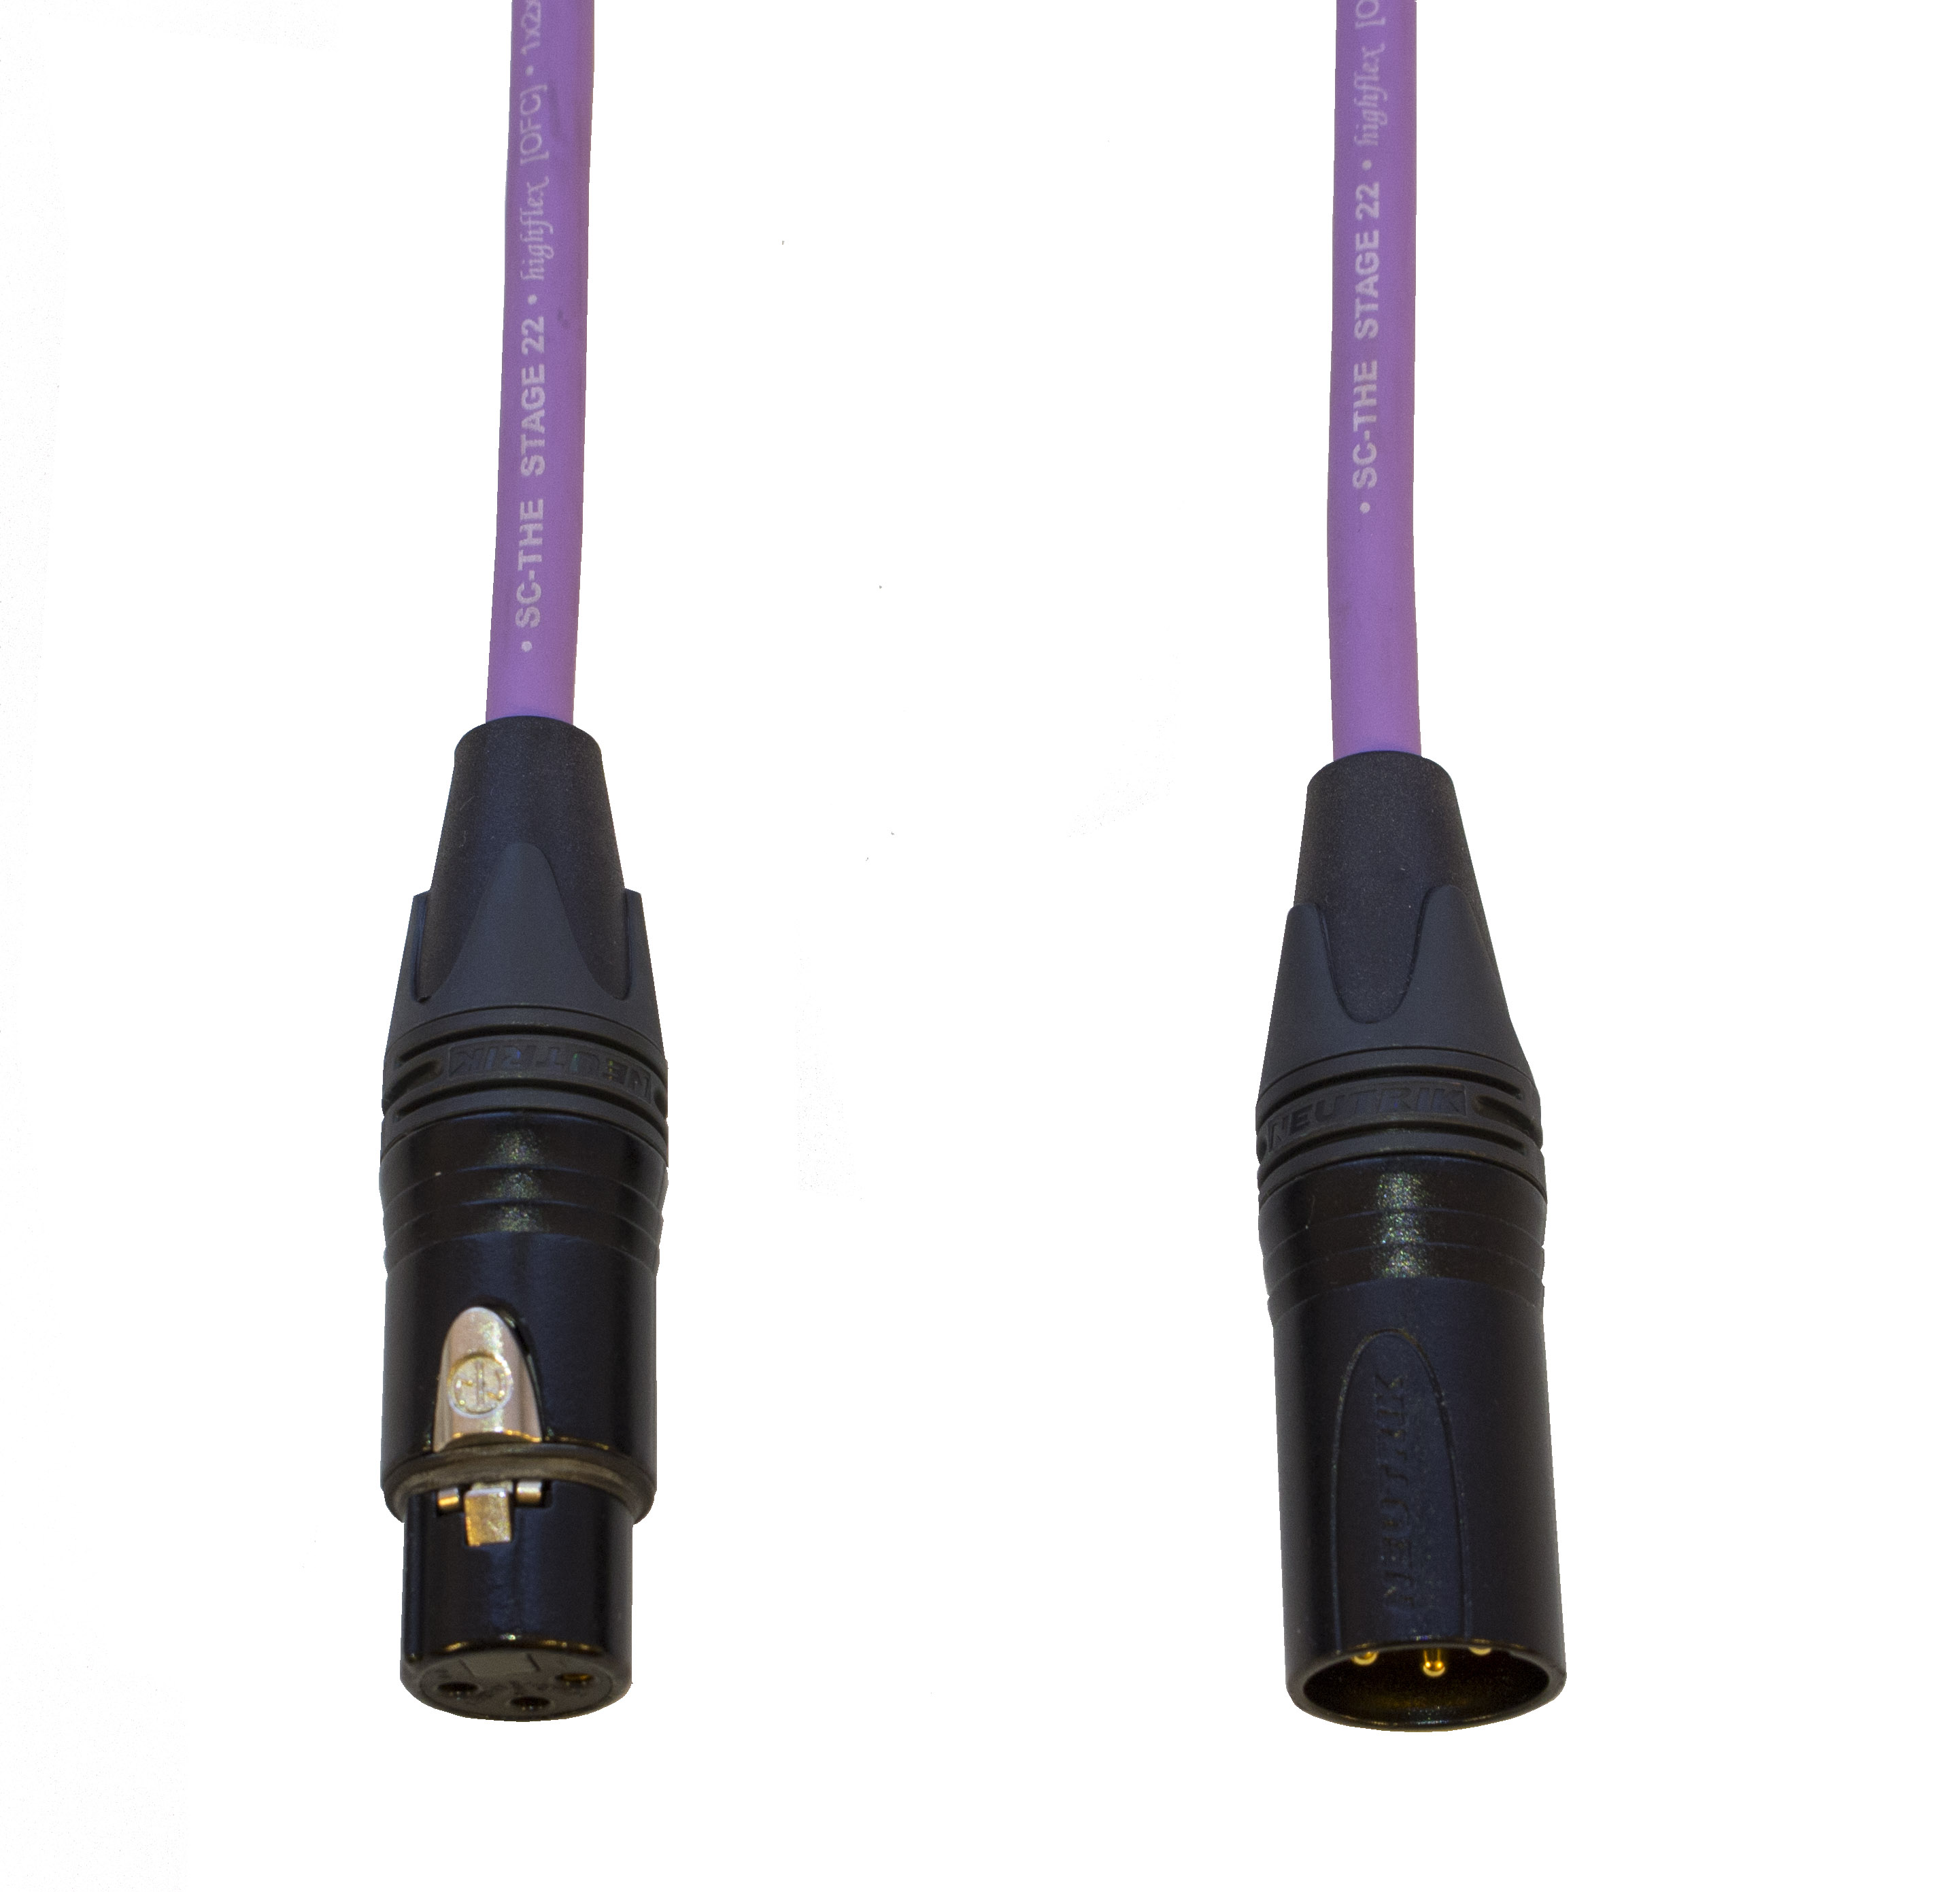 Audiokabel XLR konektor Neutrik poz. male/female  35 m, Sommer, fialový